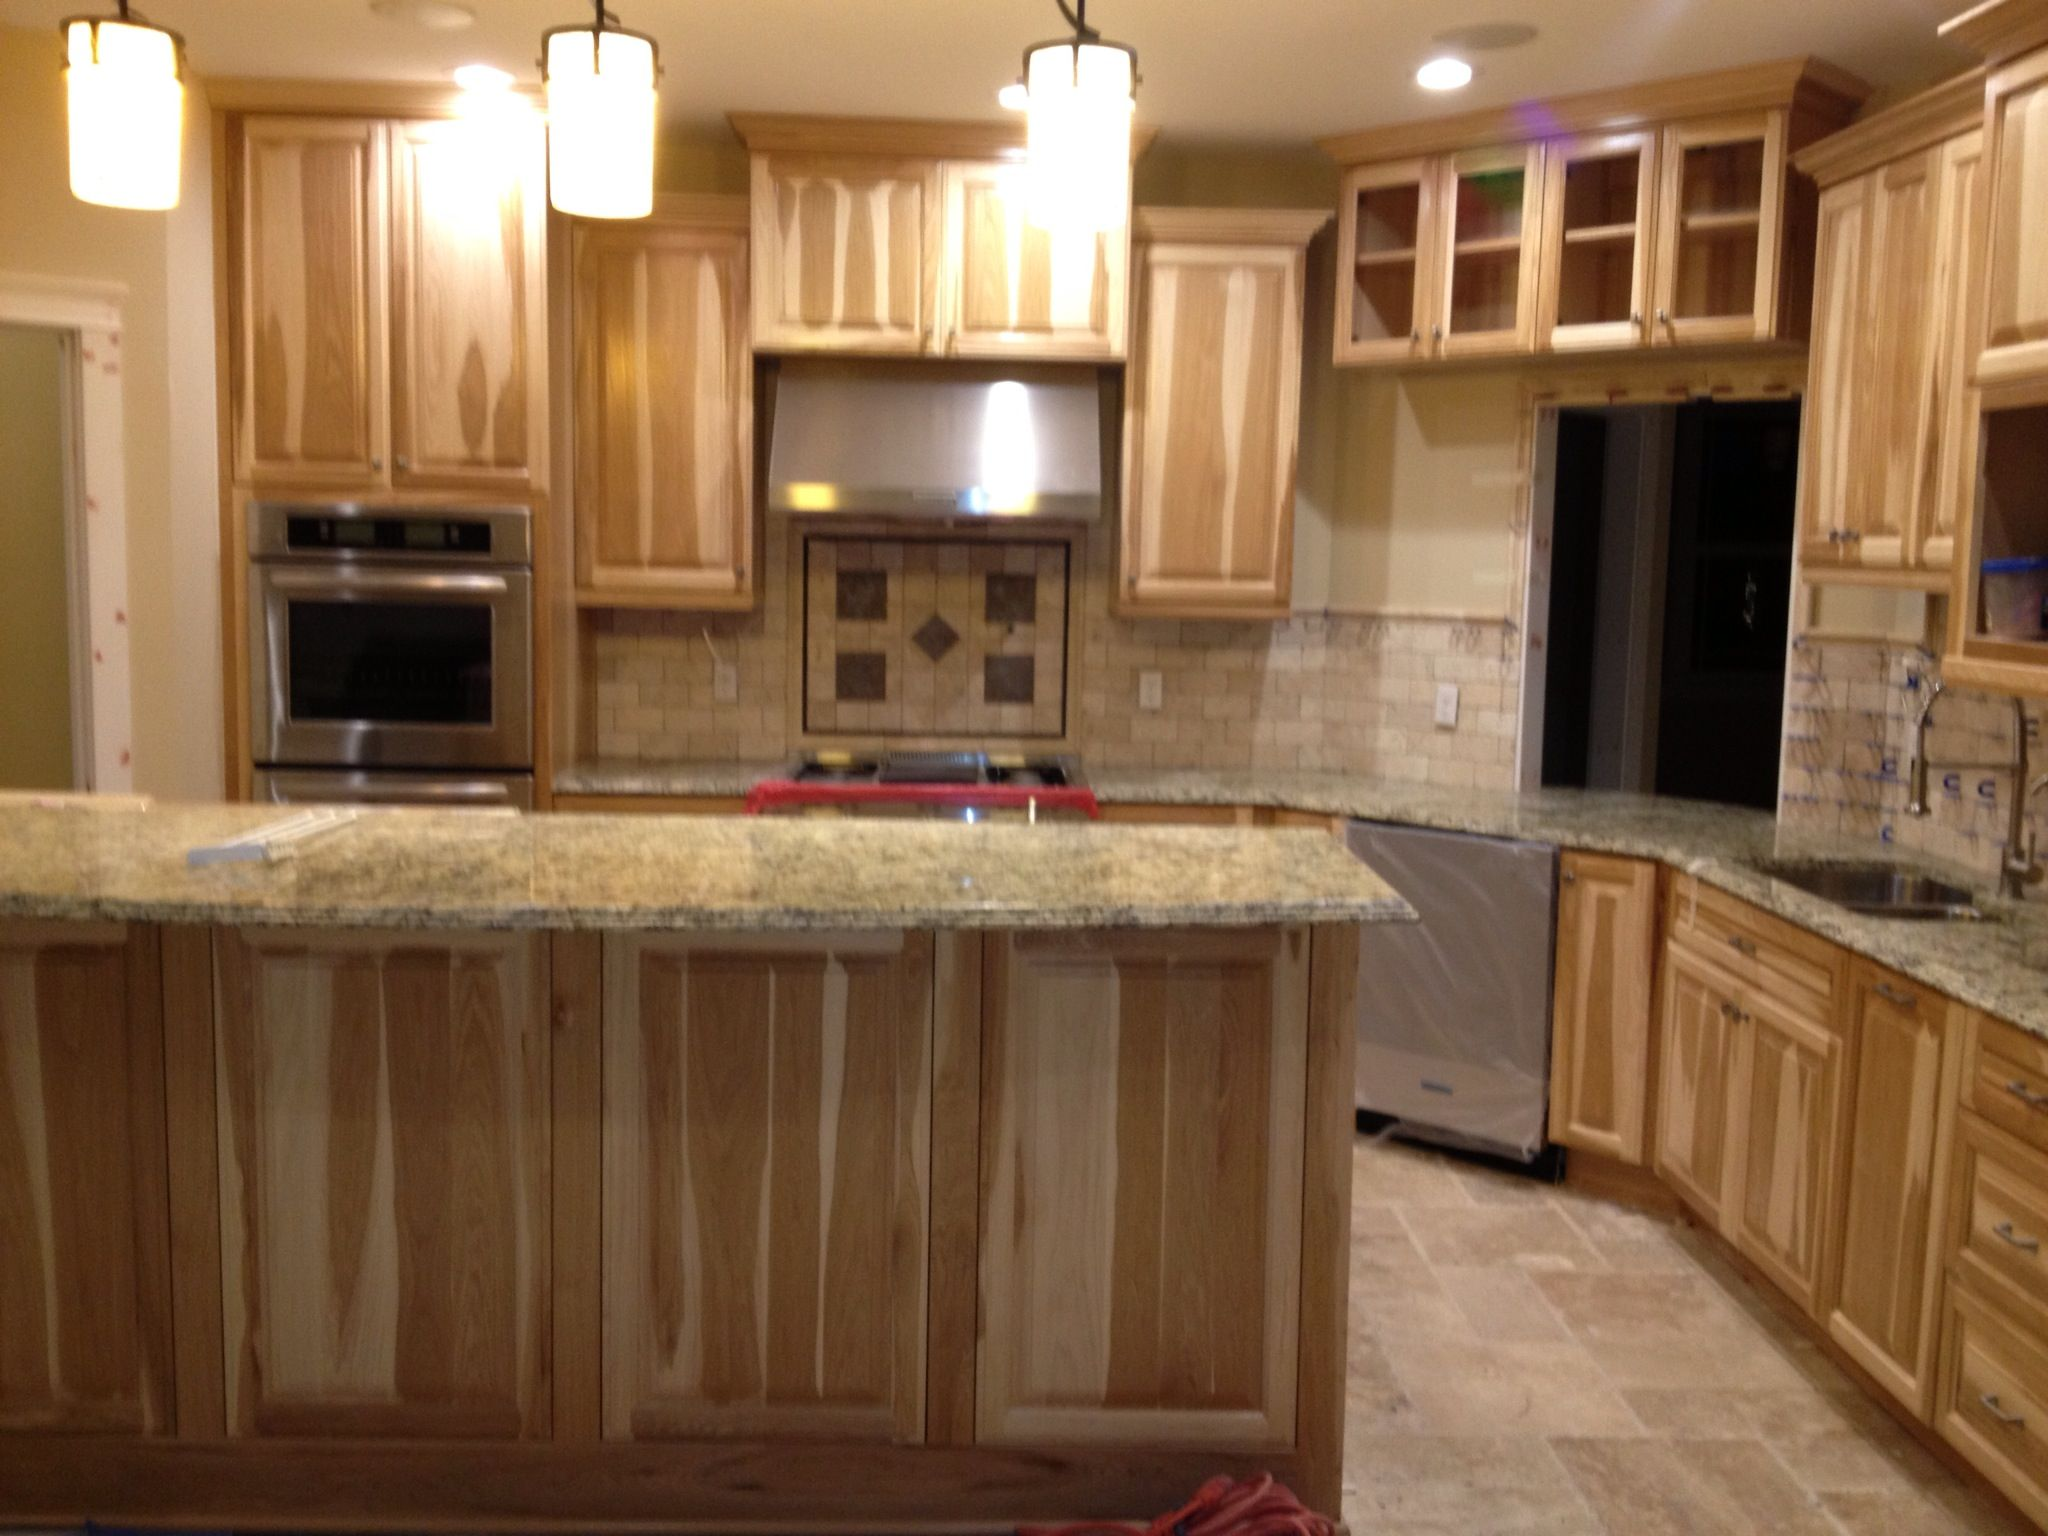 kitchen ideas kitchen cabinets and countertops Kitchen with Hickory cabinets and travertine backsplash With granite countertops